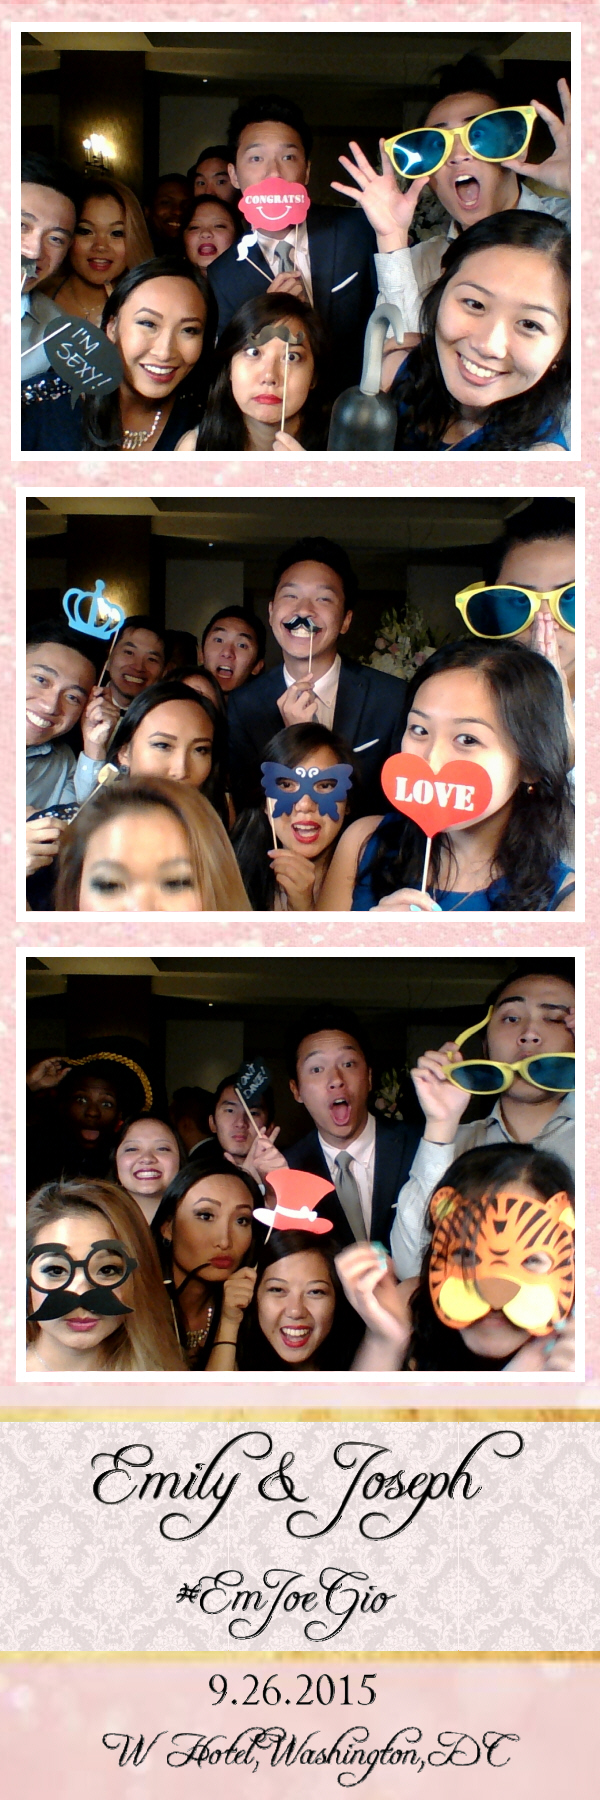 Guest House Events Photo Booth E&J (59).jpg